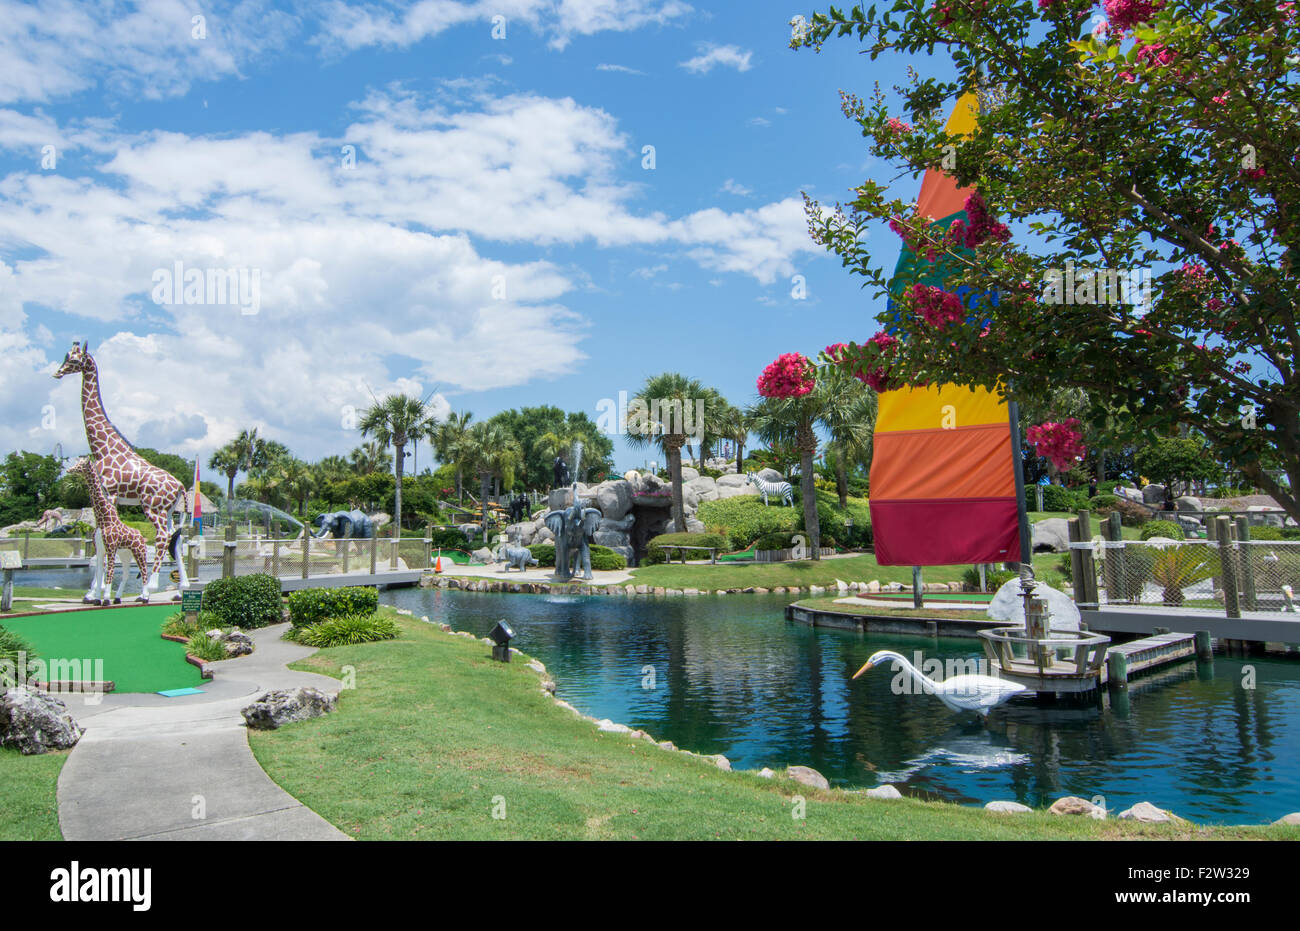 Coconut Creek Stock Photos & Coconut Creek Stock Images - Alamy